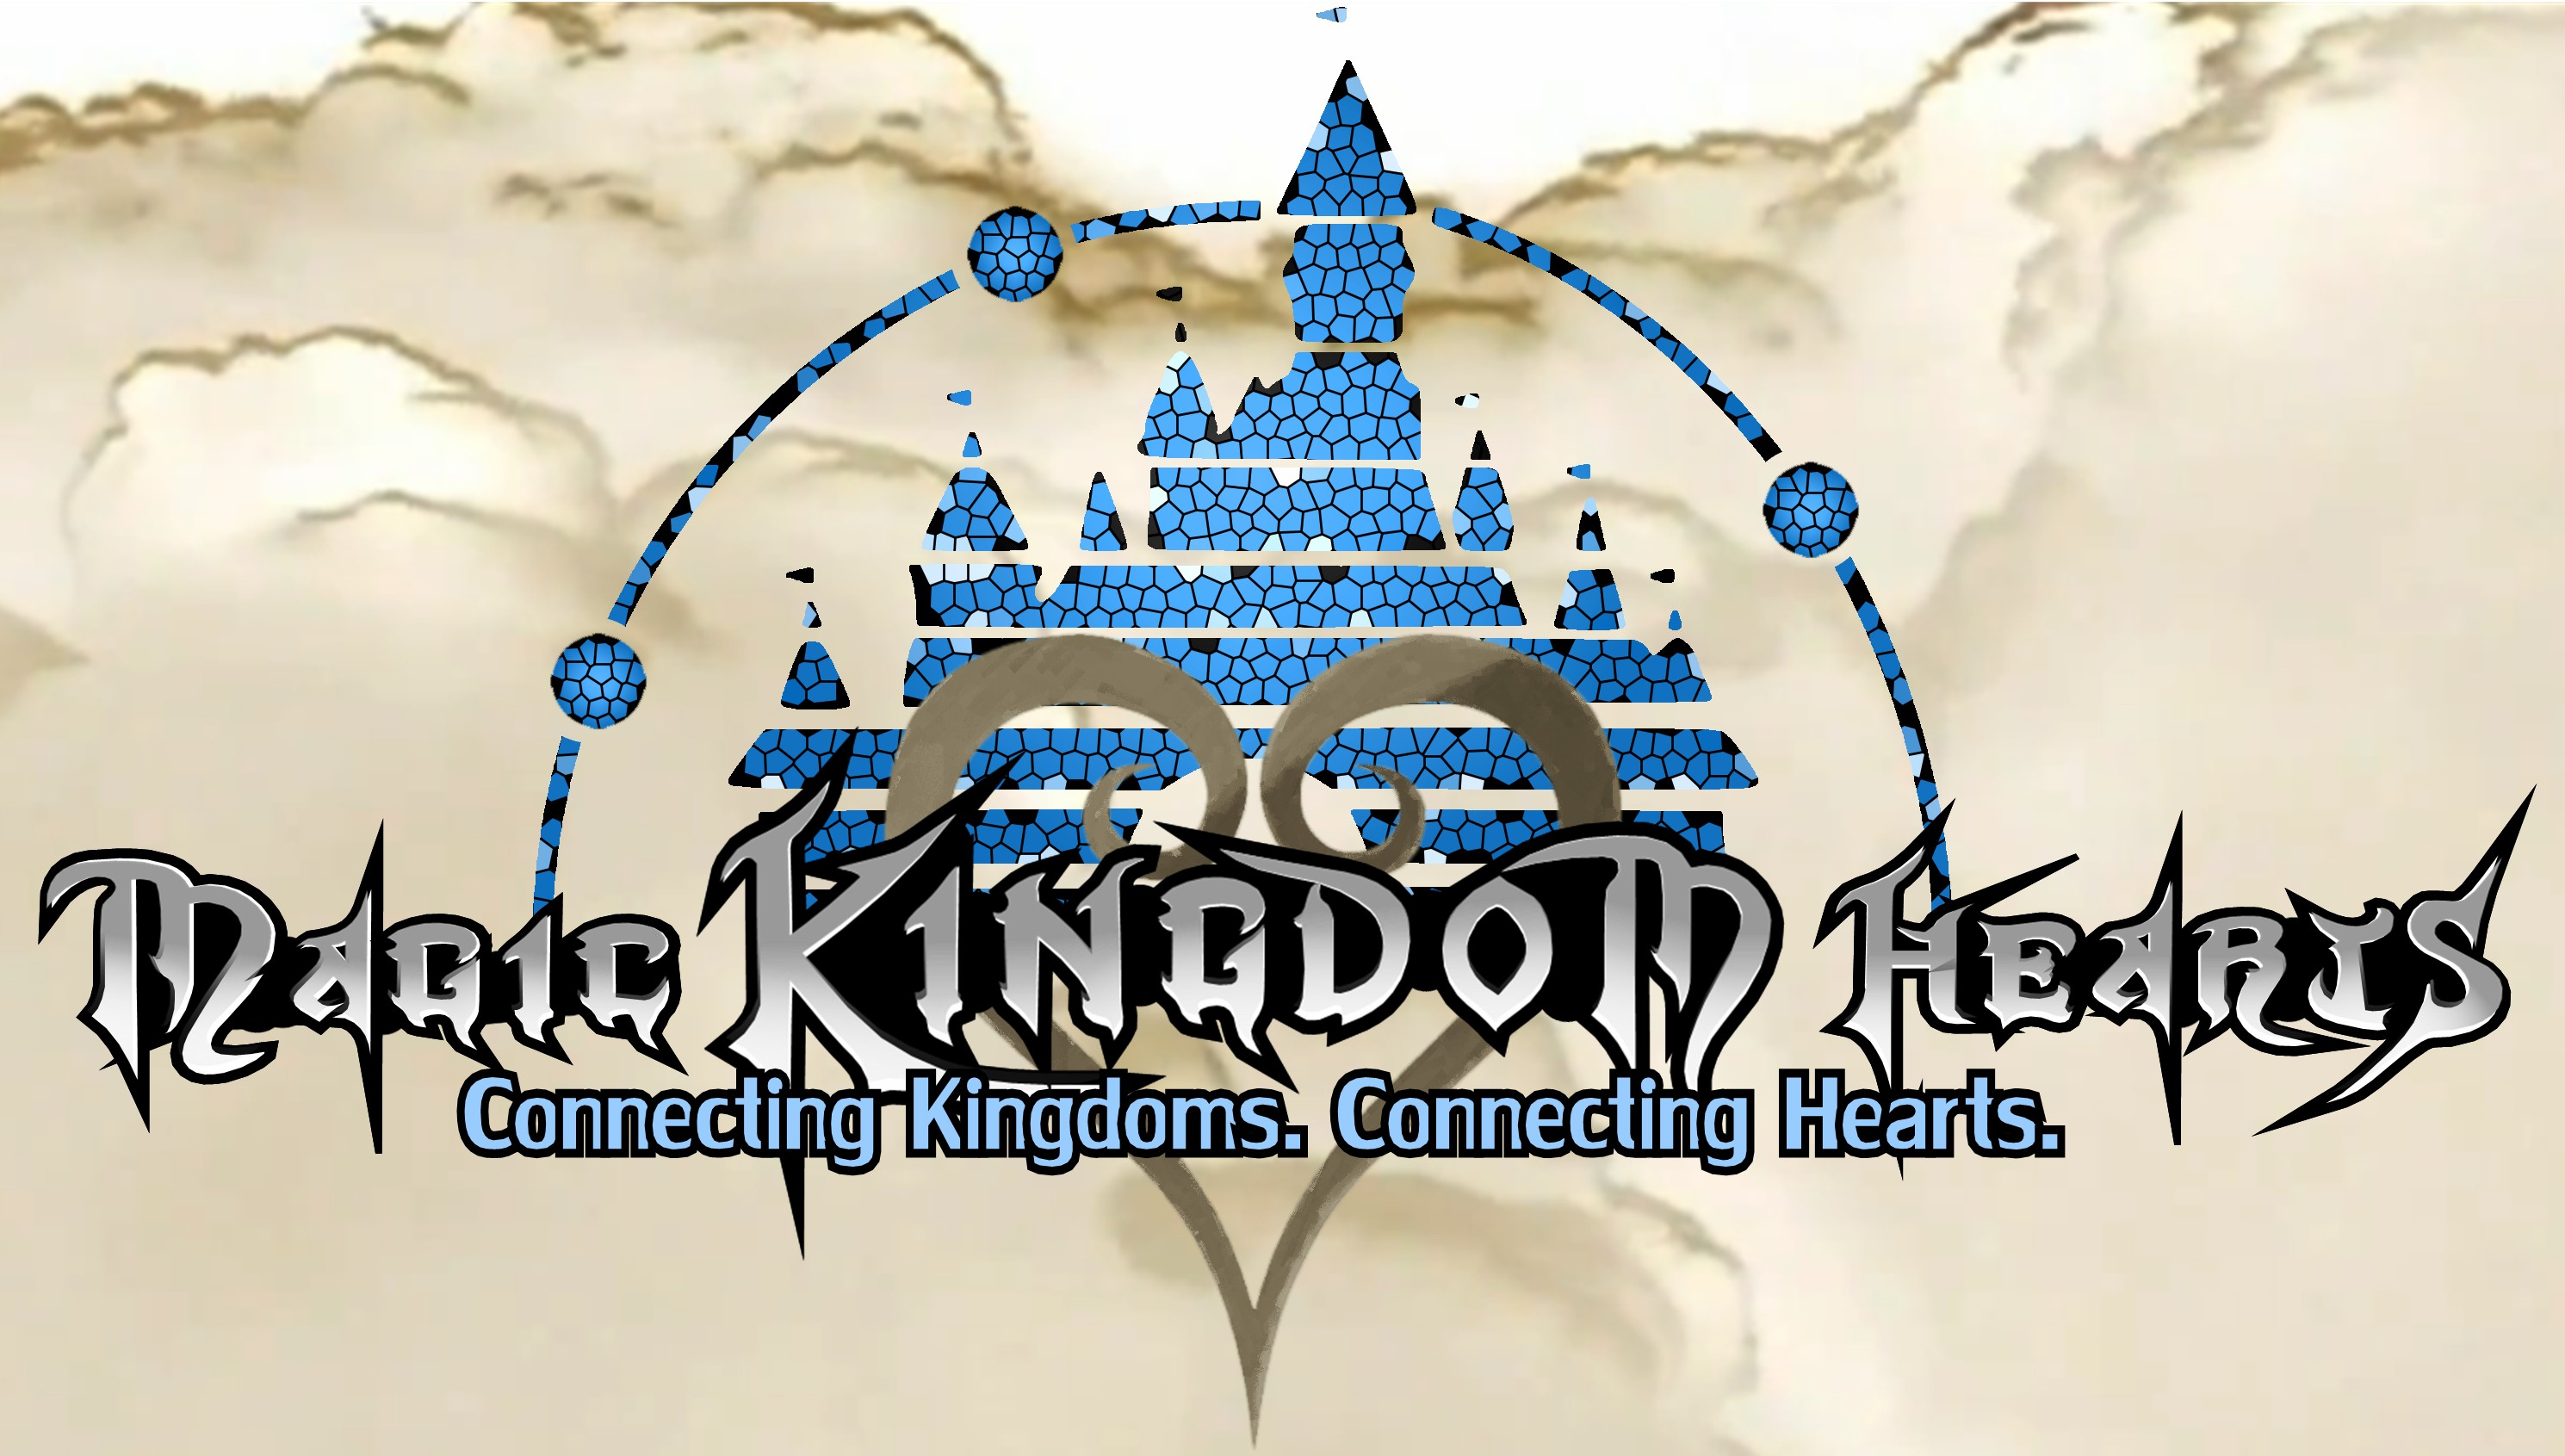 PROJECT: Magic Kingdom Hearts